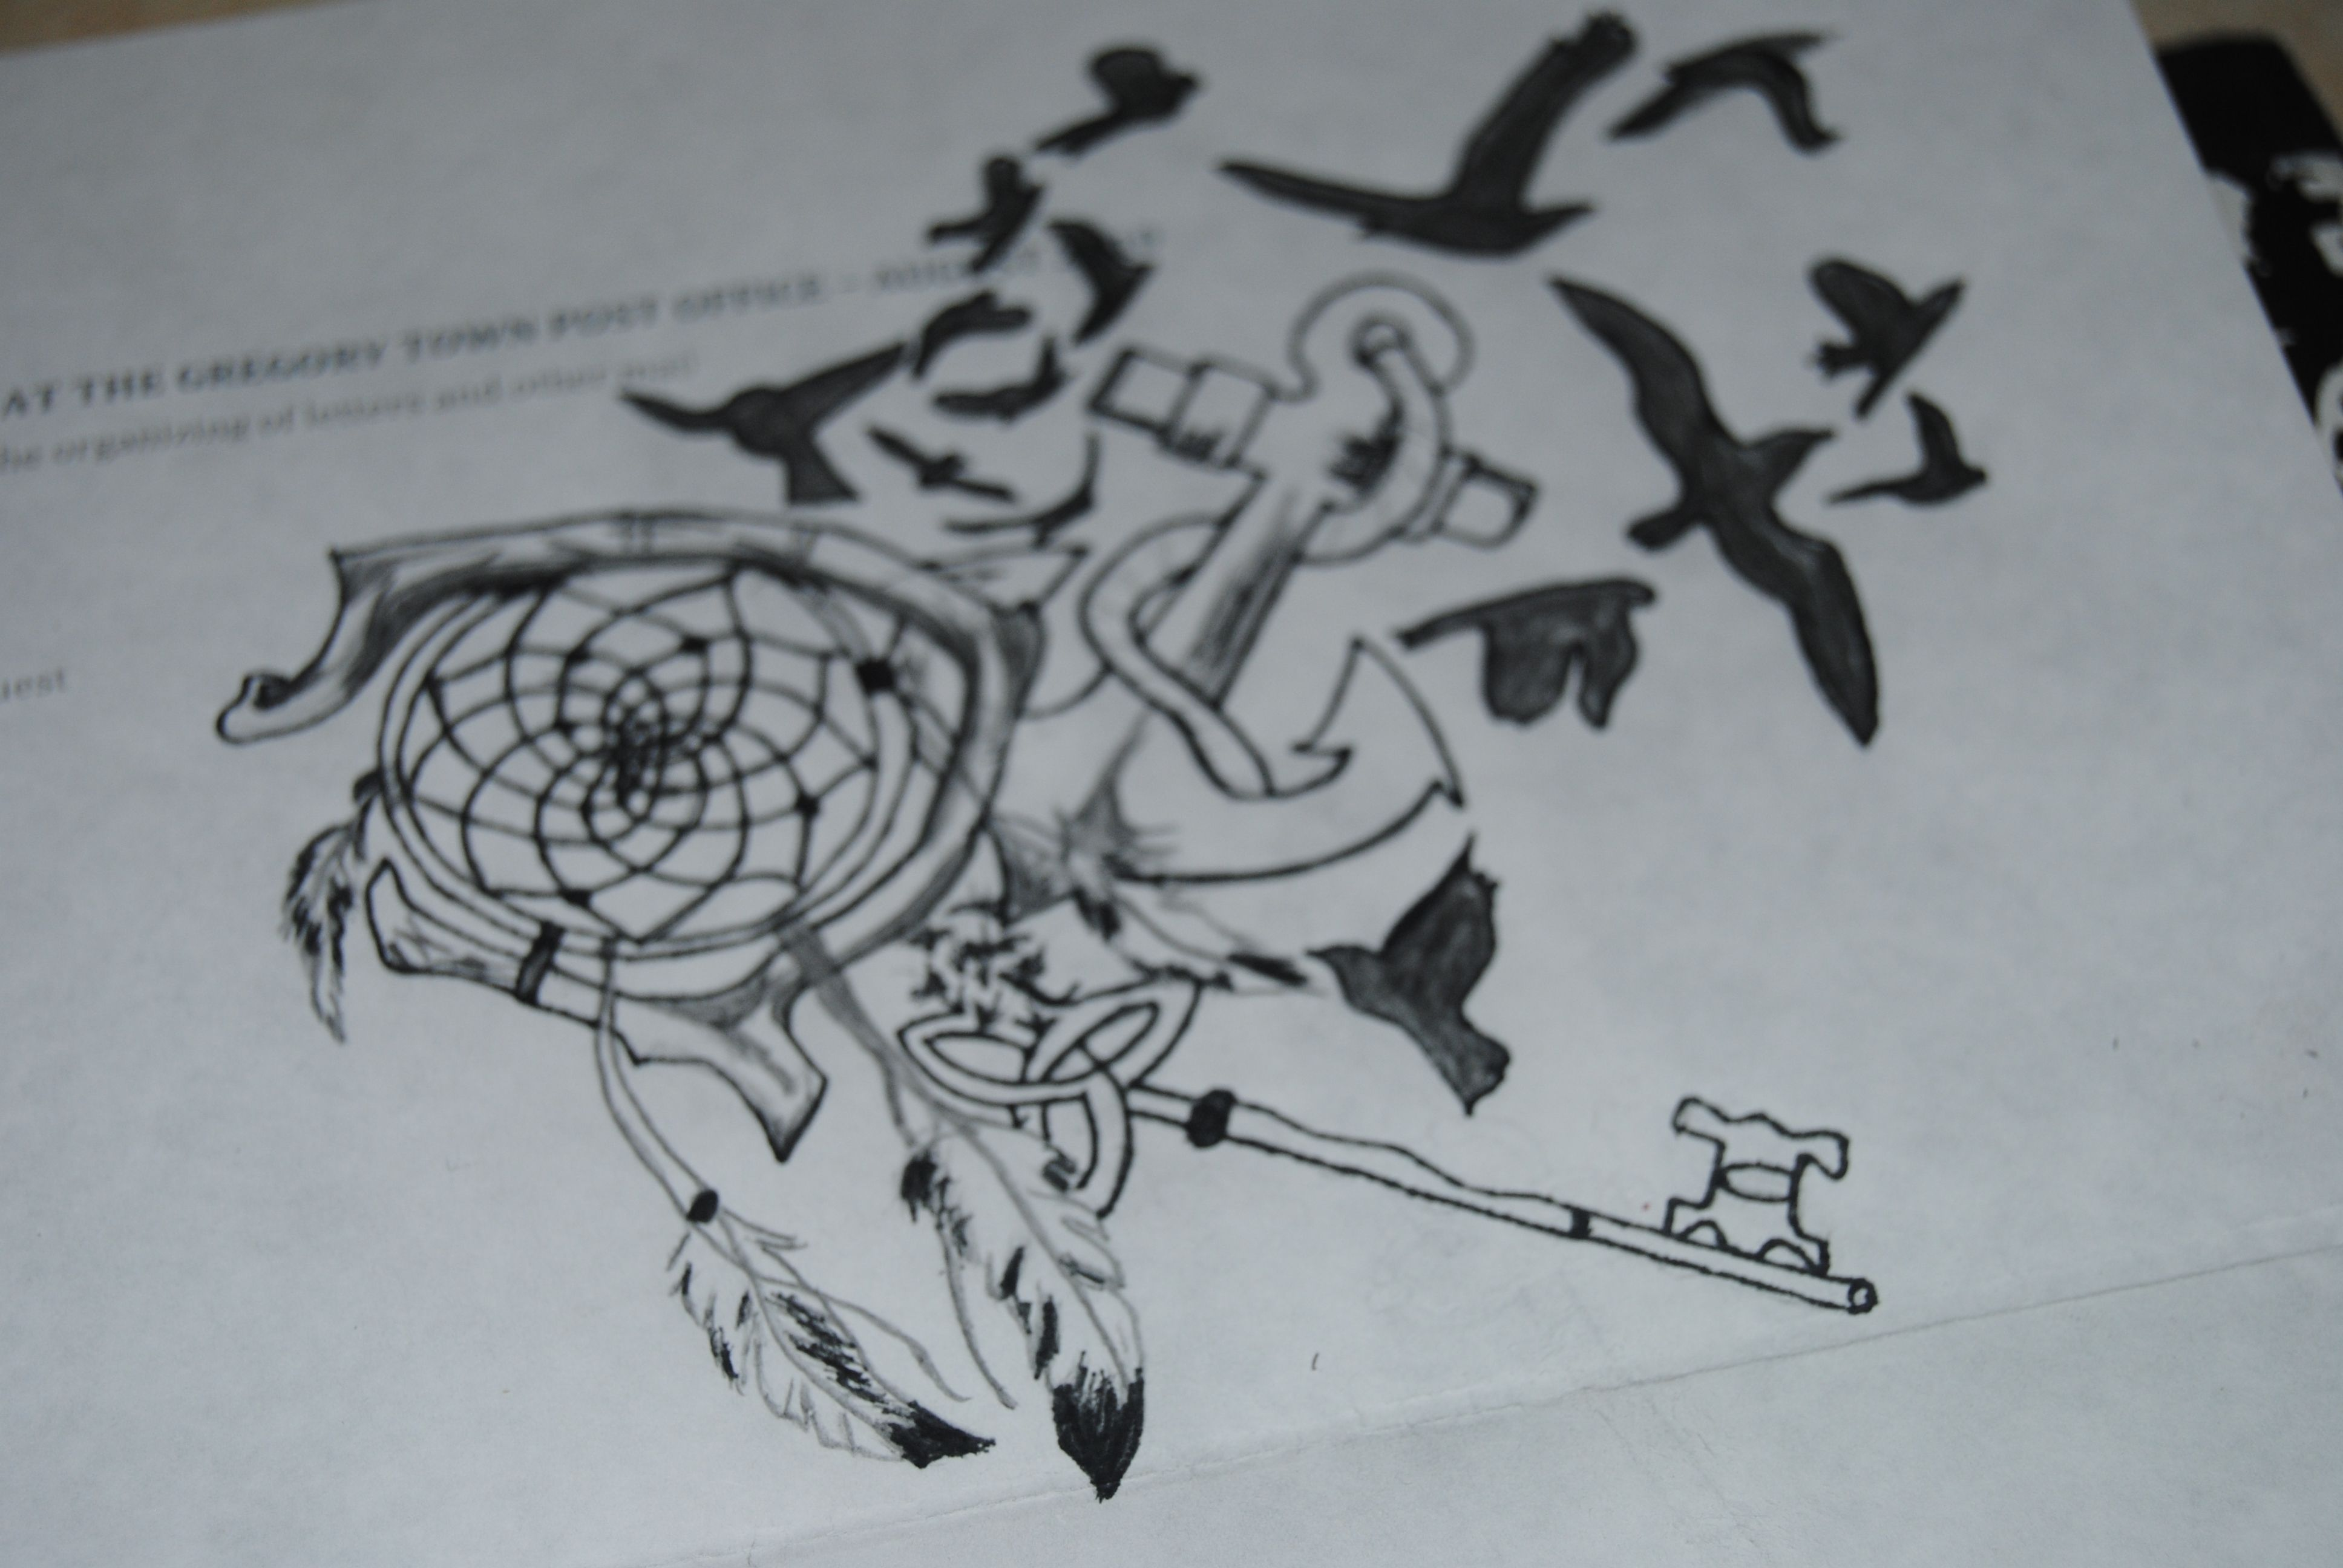 Name tattoo good idea i have no idea what to name this one any suggestions are welcomed